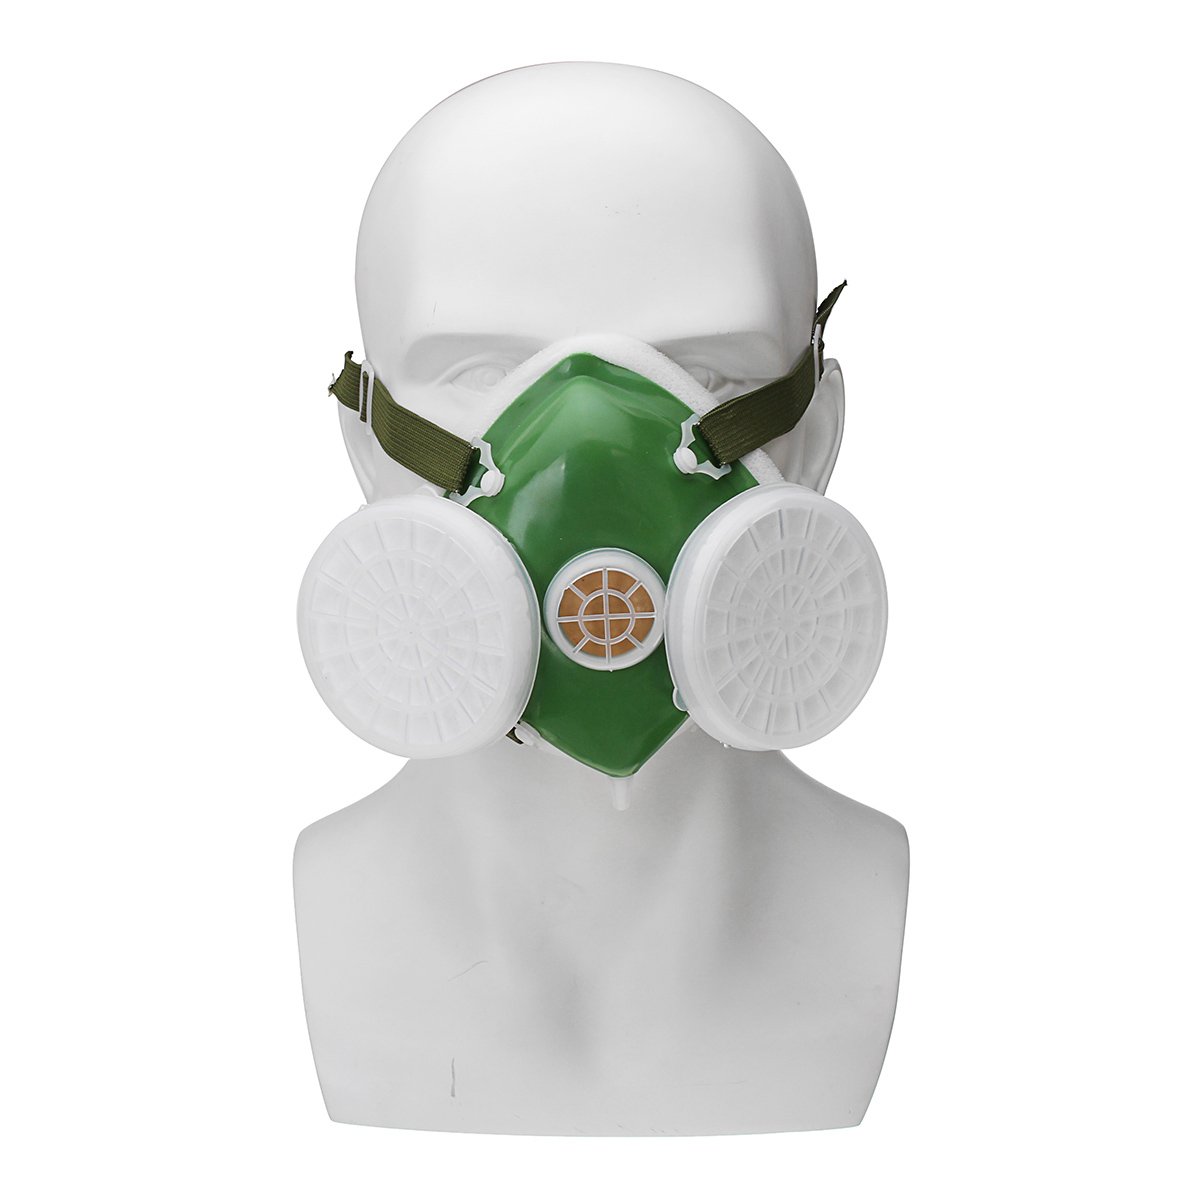 Industrial Anti-dust Face Gas Mask Respirator Safety Painting Spraying Welding Mask